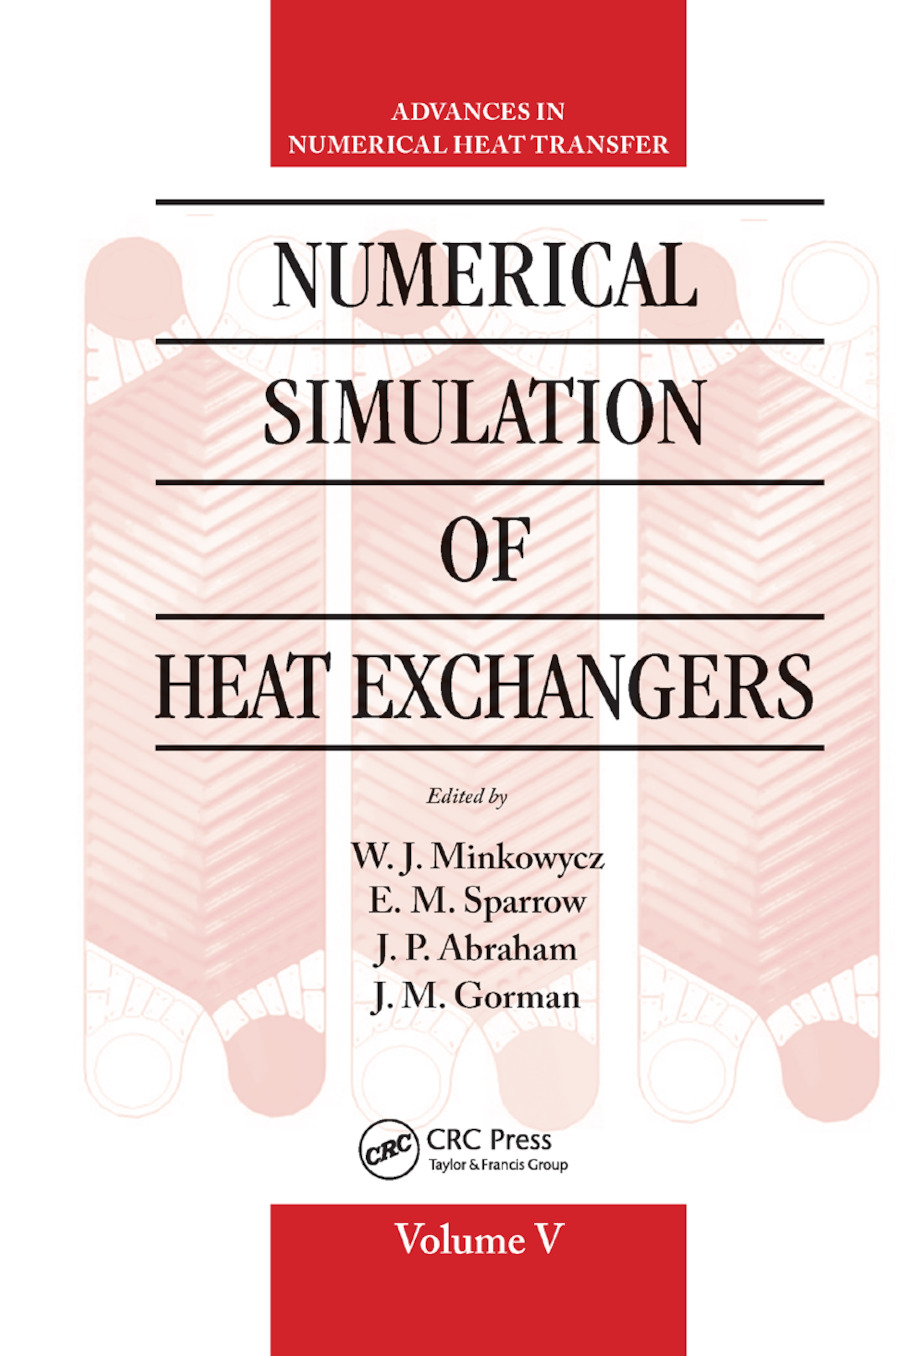 Numerical Simulation of Heat Exchangers: Advances in Numerical Heat Transfer Volume V, 1st Edition (Paperback) book cover